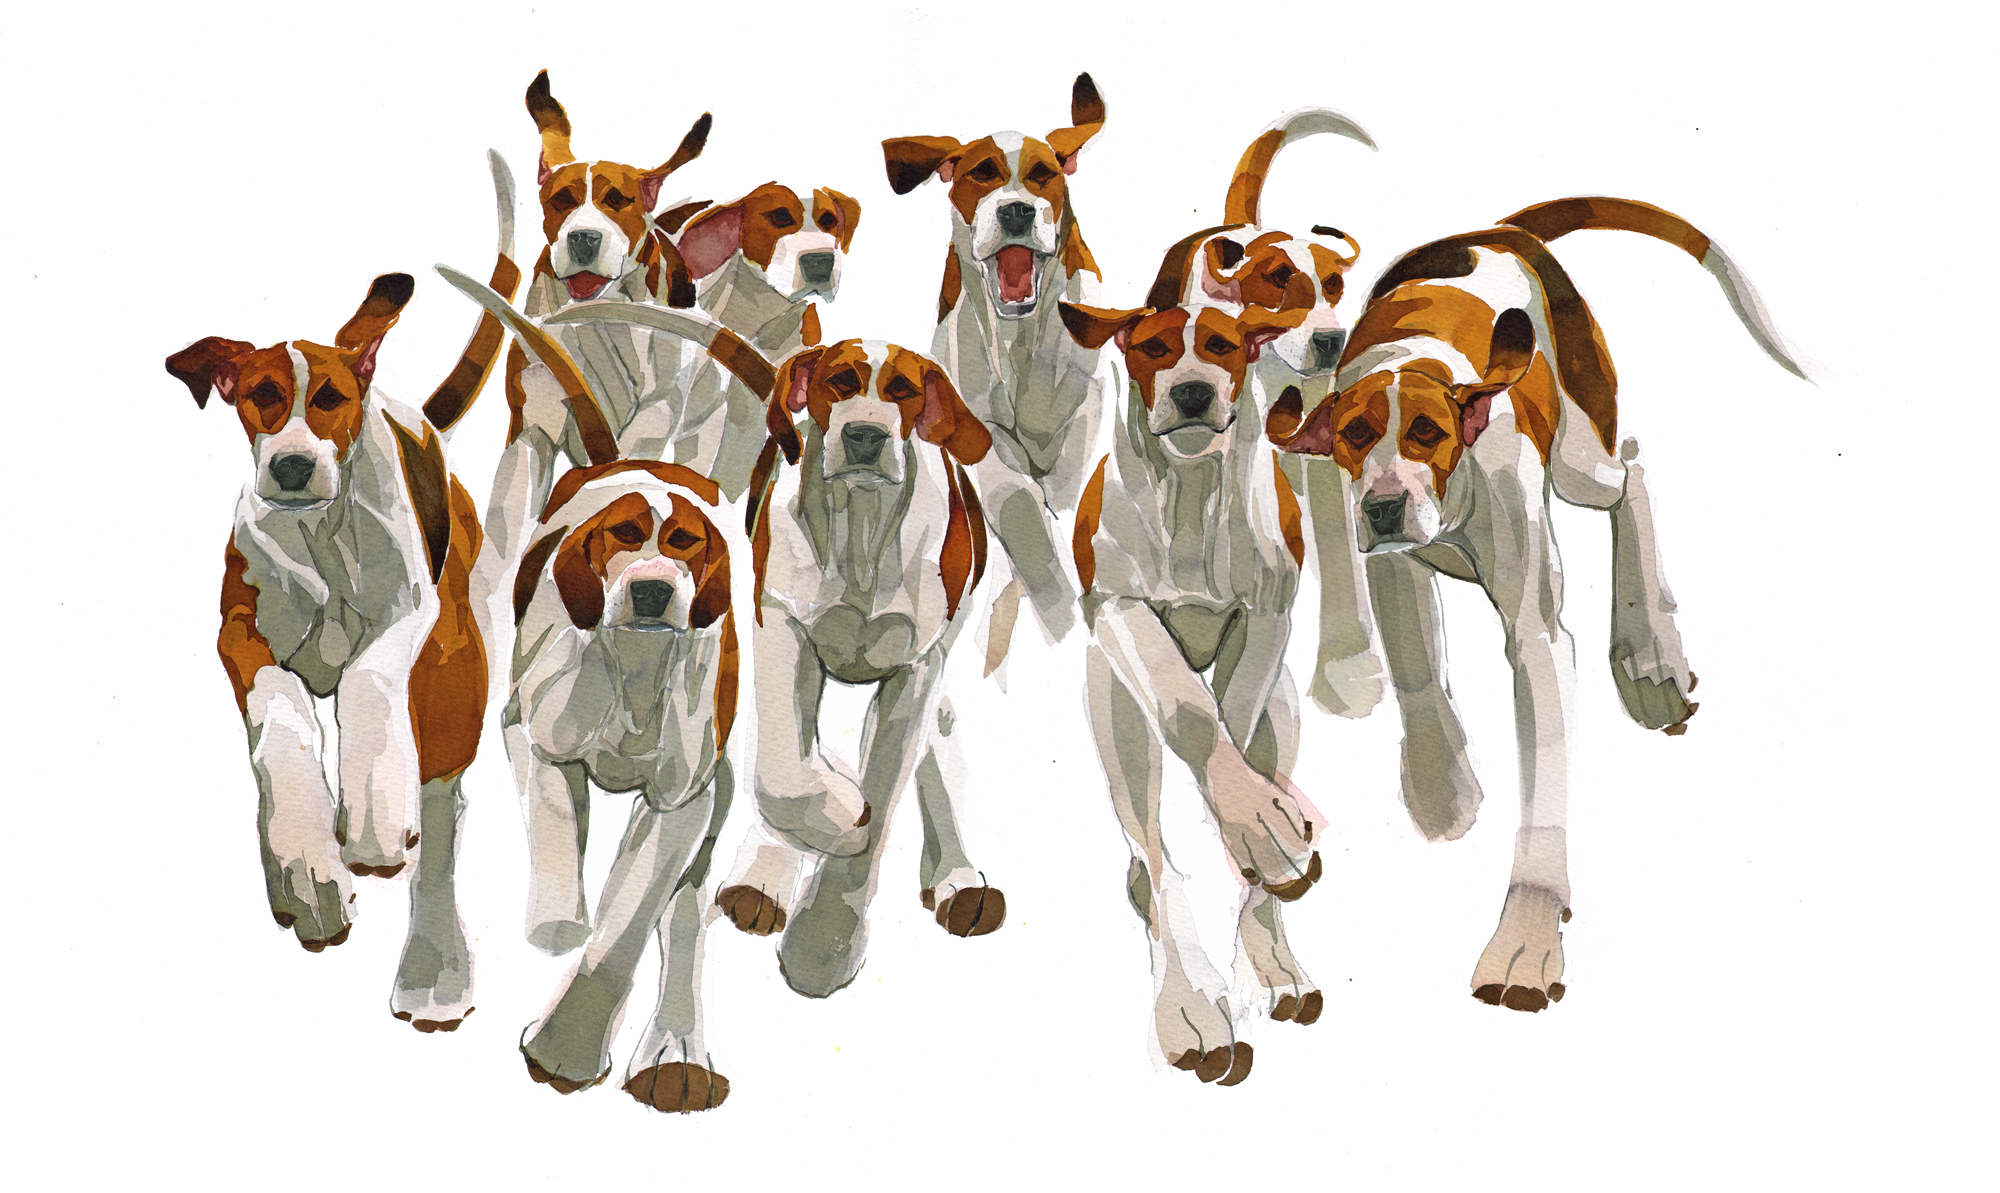 Hounds image